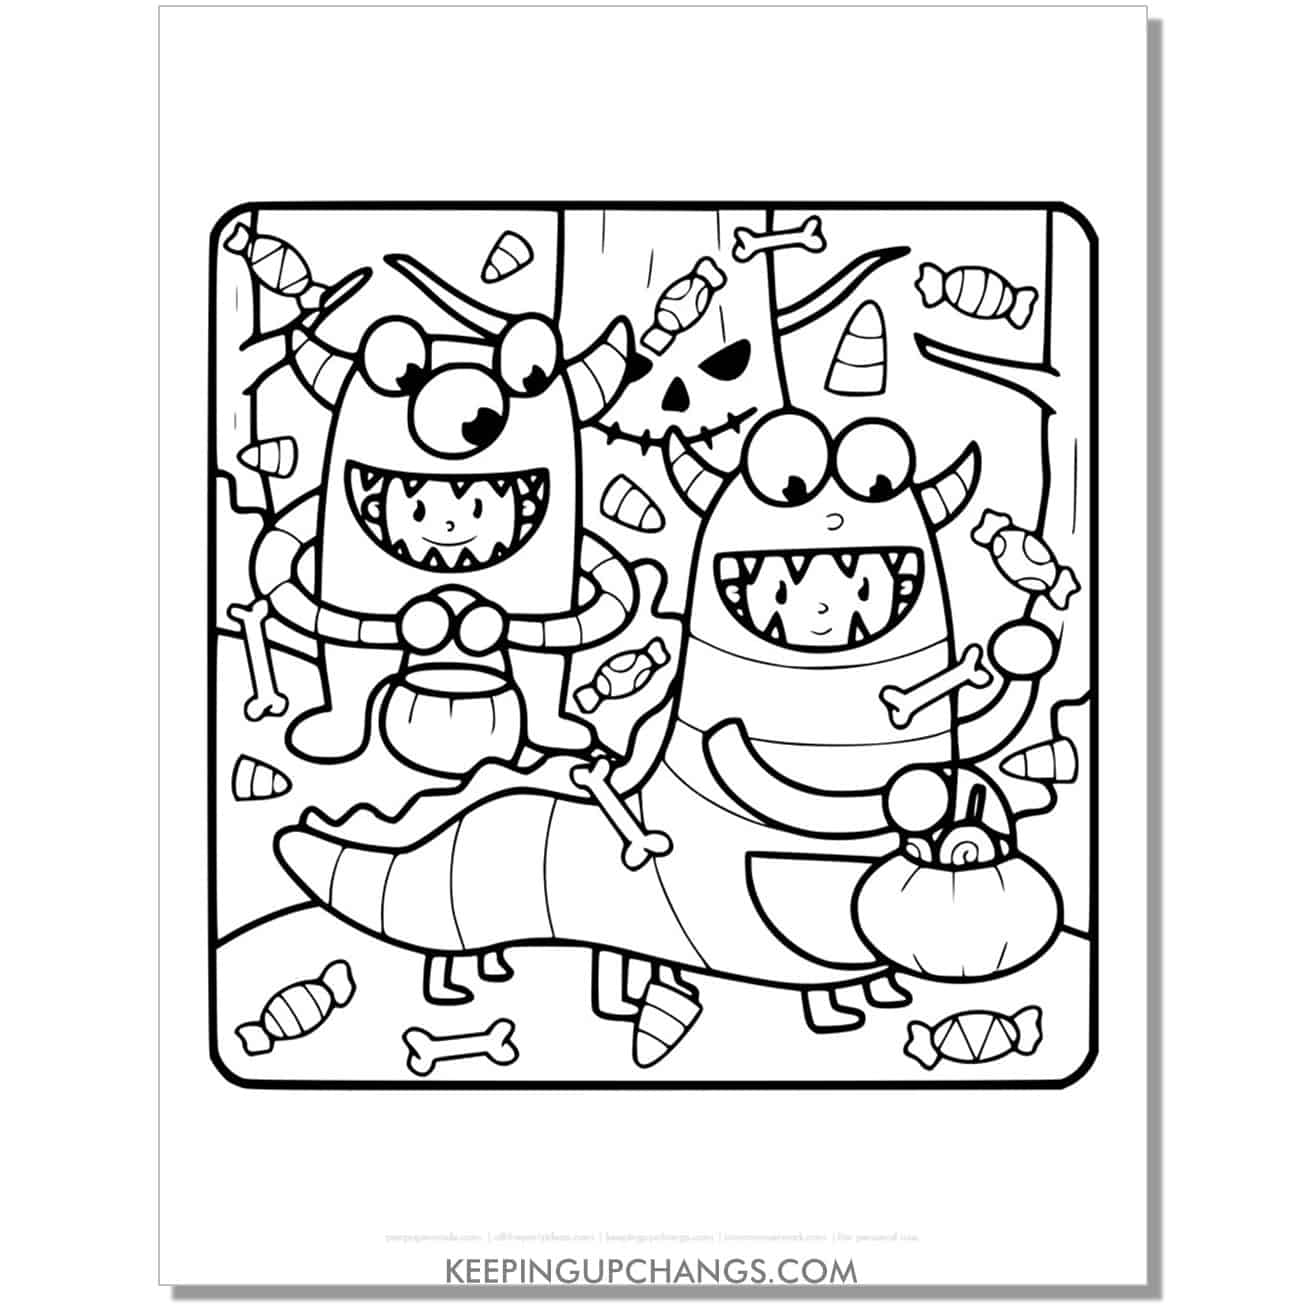 free kids in halloween costume monster coloring page.